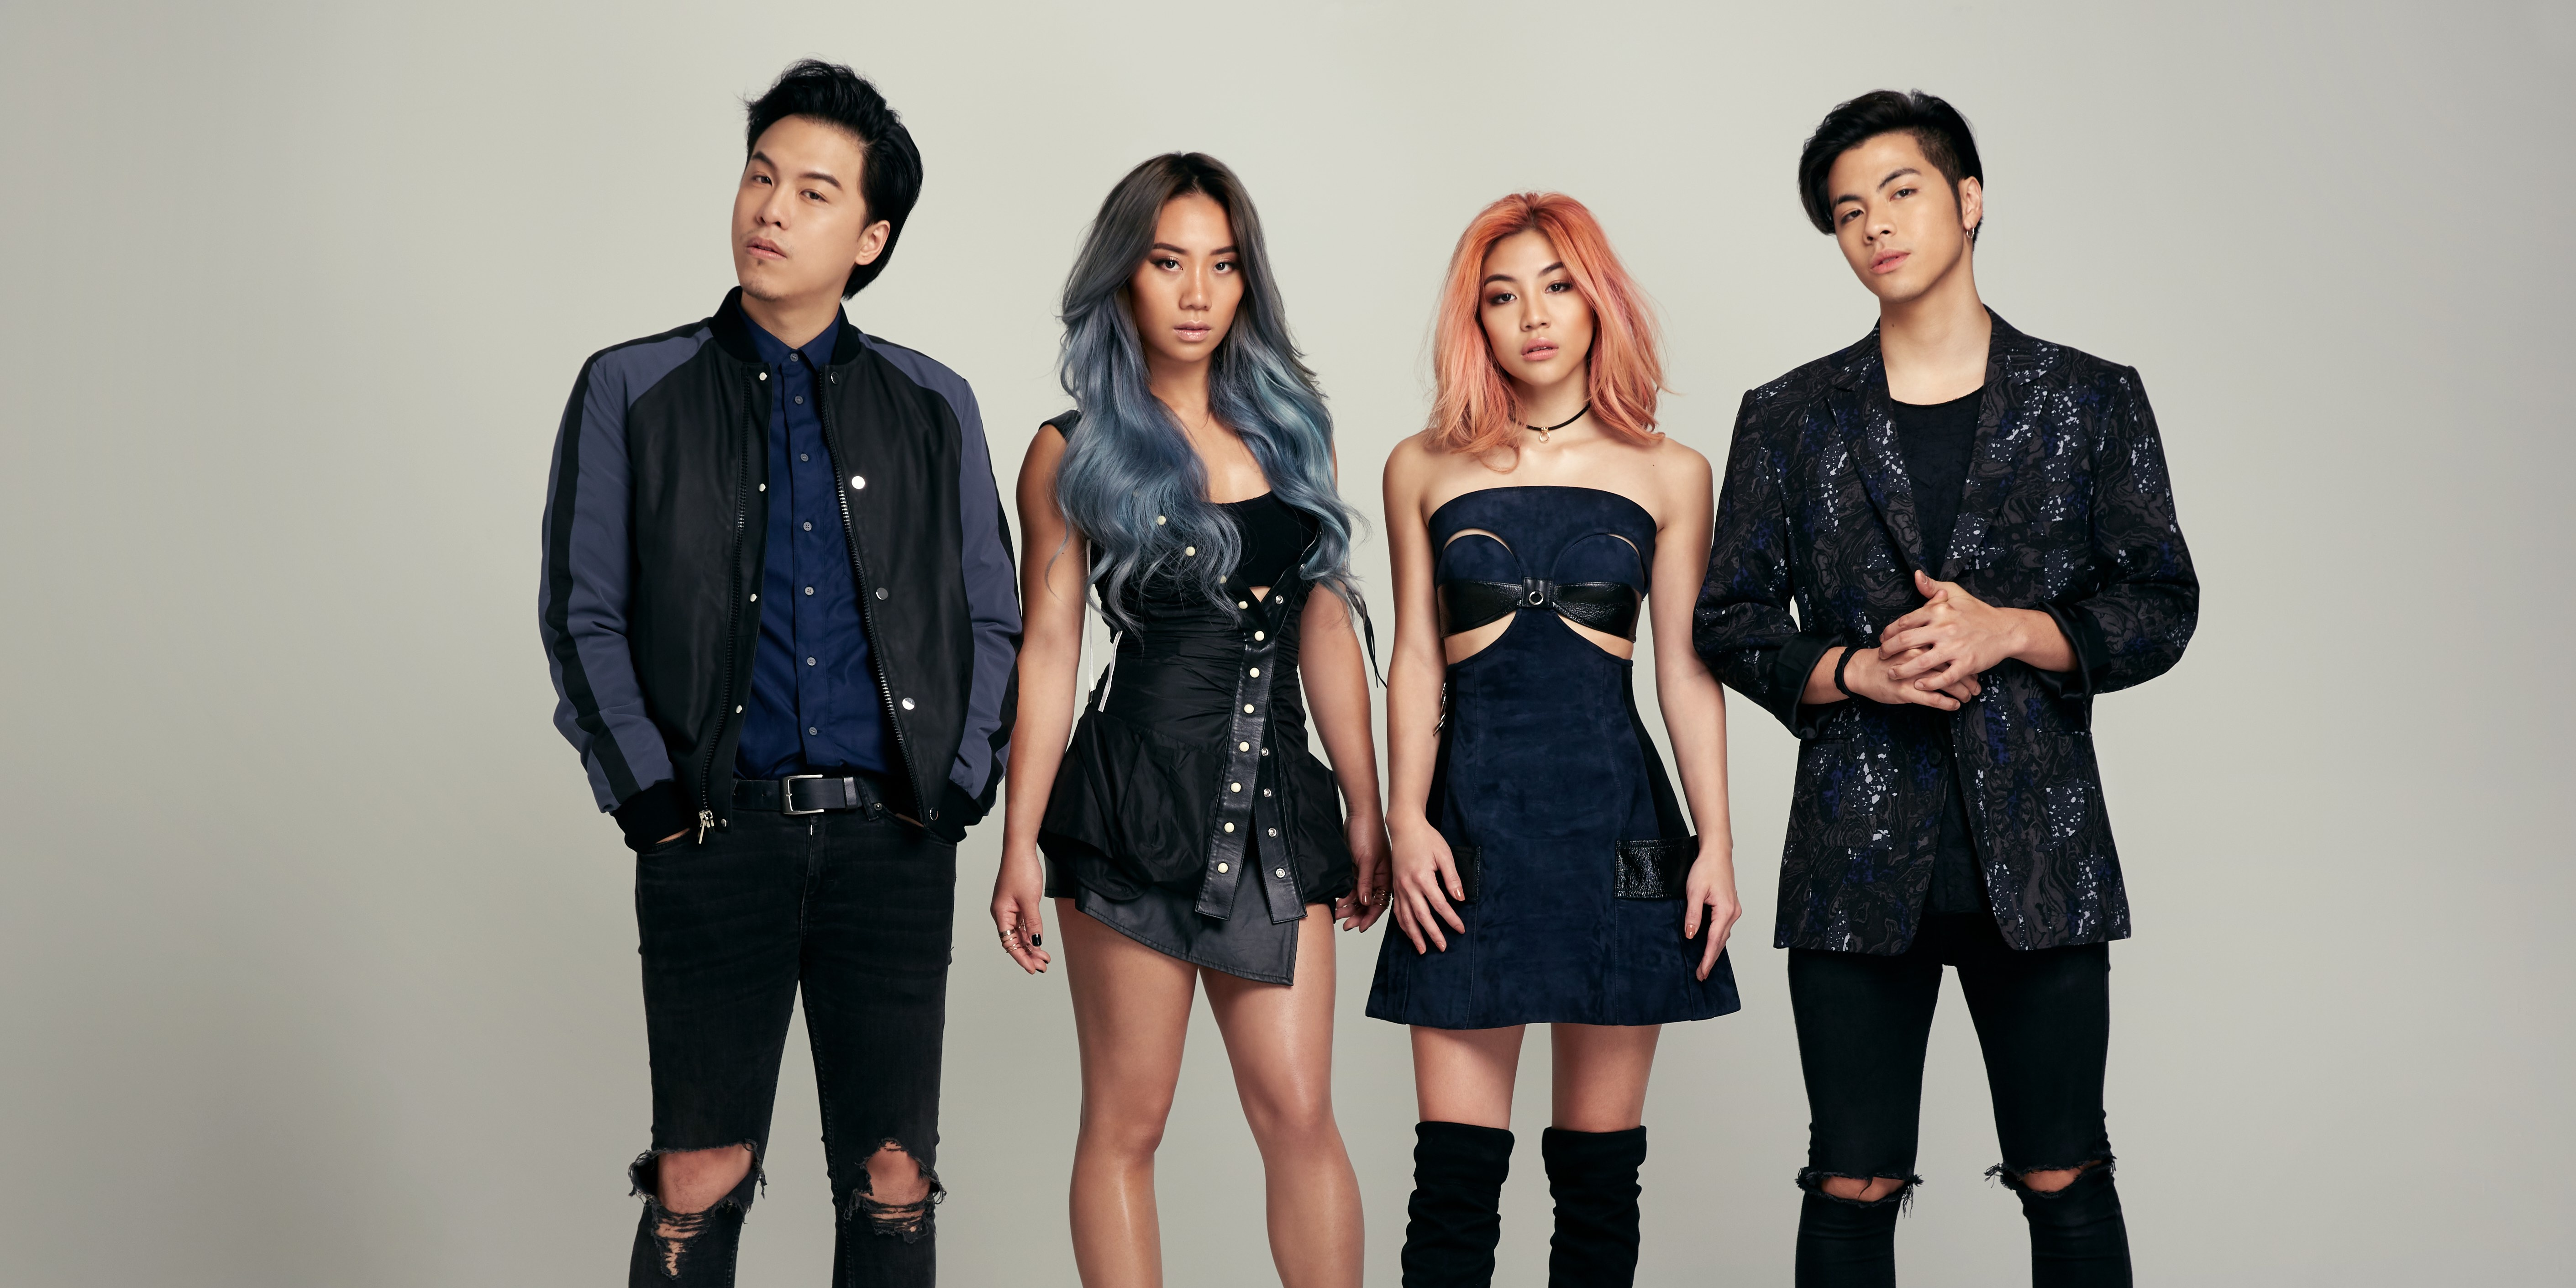 The Sam Willows release two new singles, 'Robot' & 'Papa Money' – listen